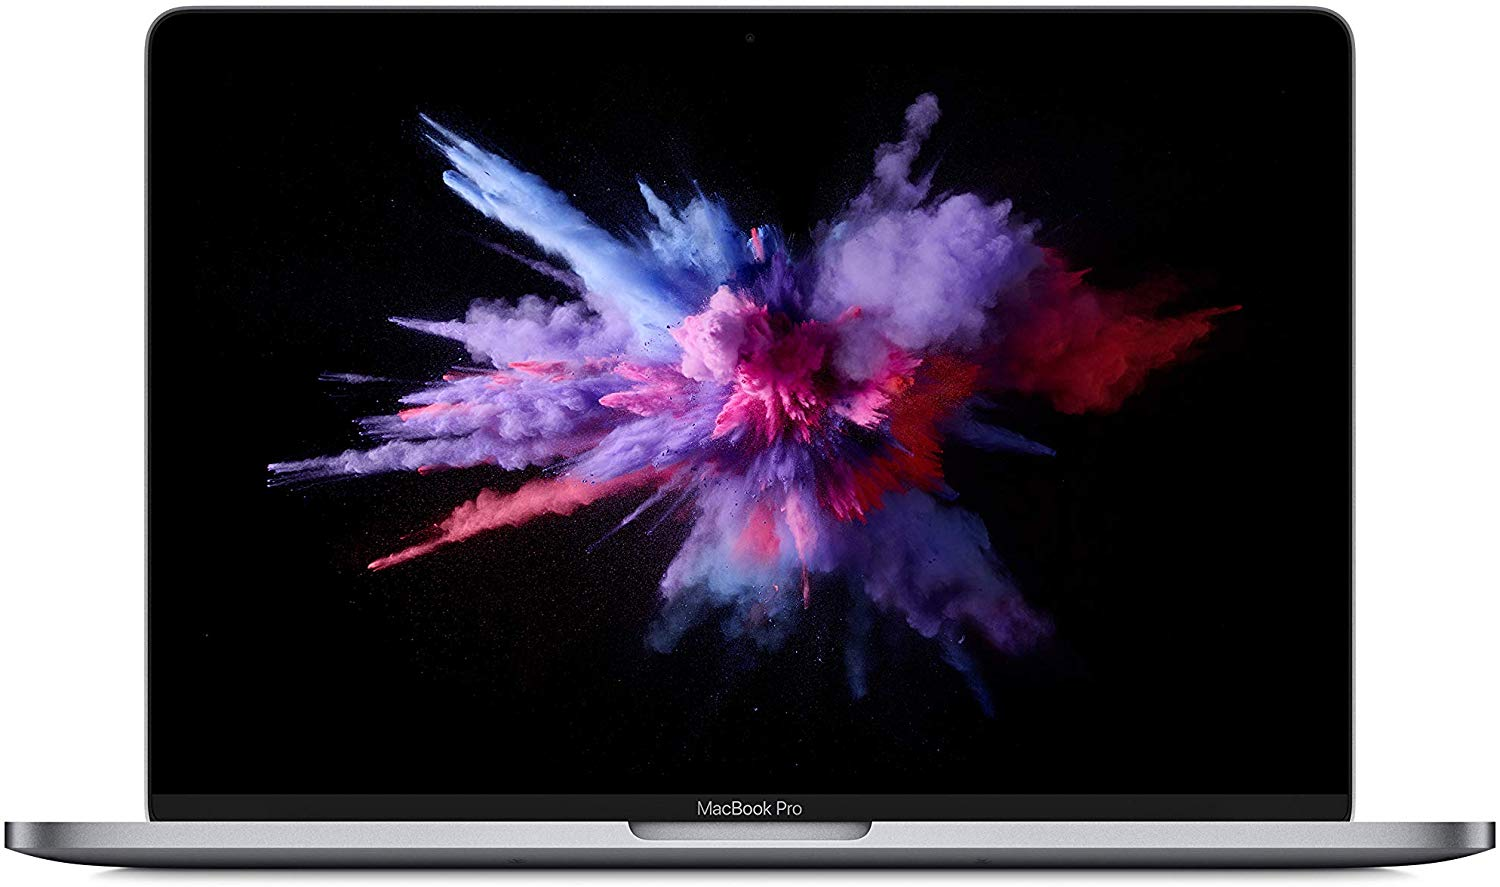 Apple's 13-inch MacBook Pro and more items on sale right now on Amazon